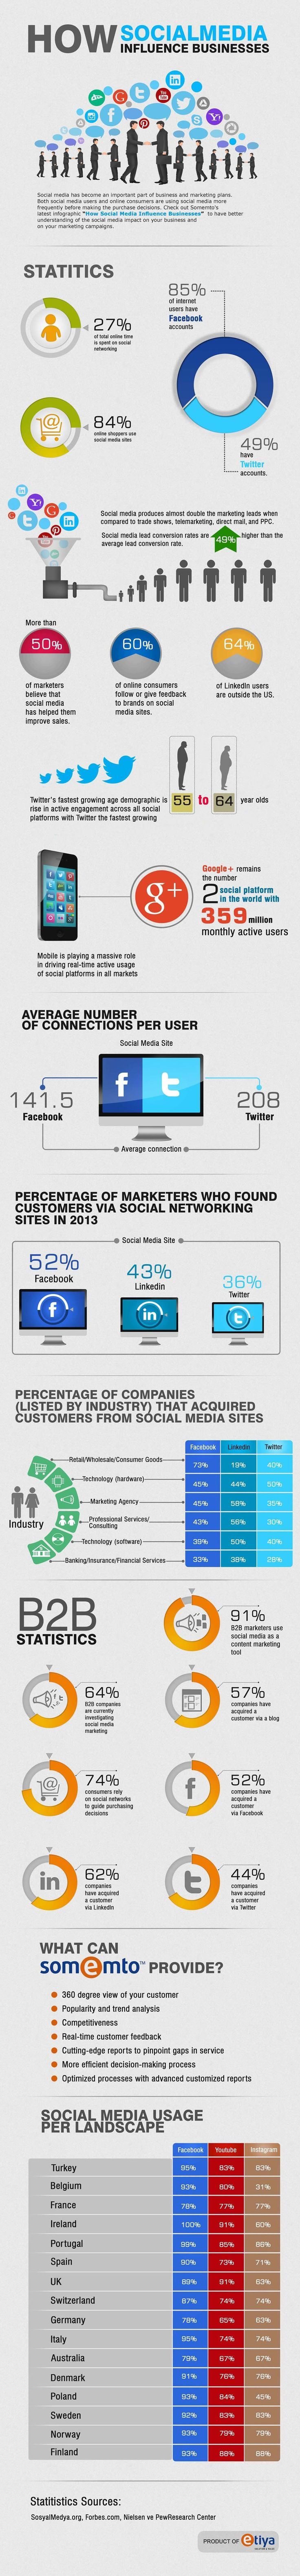 How Social Media Influences Business [INFOGRAPHIC]